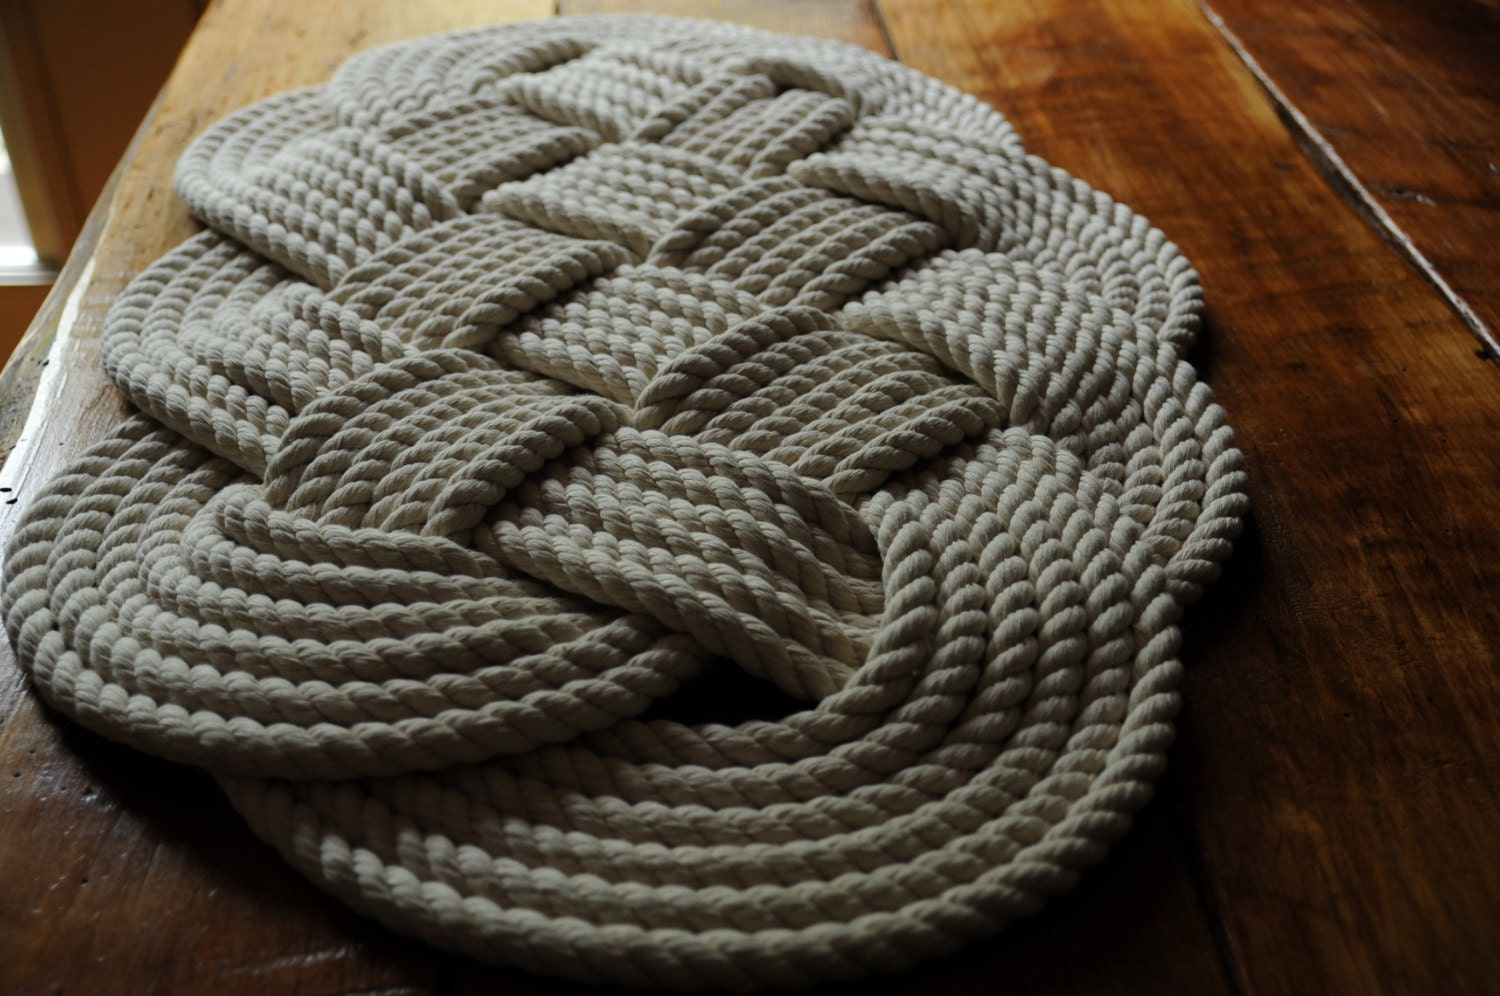 nautical decor cotton rope bath mat 29 x 16